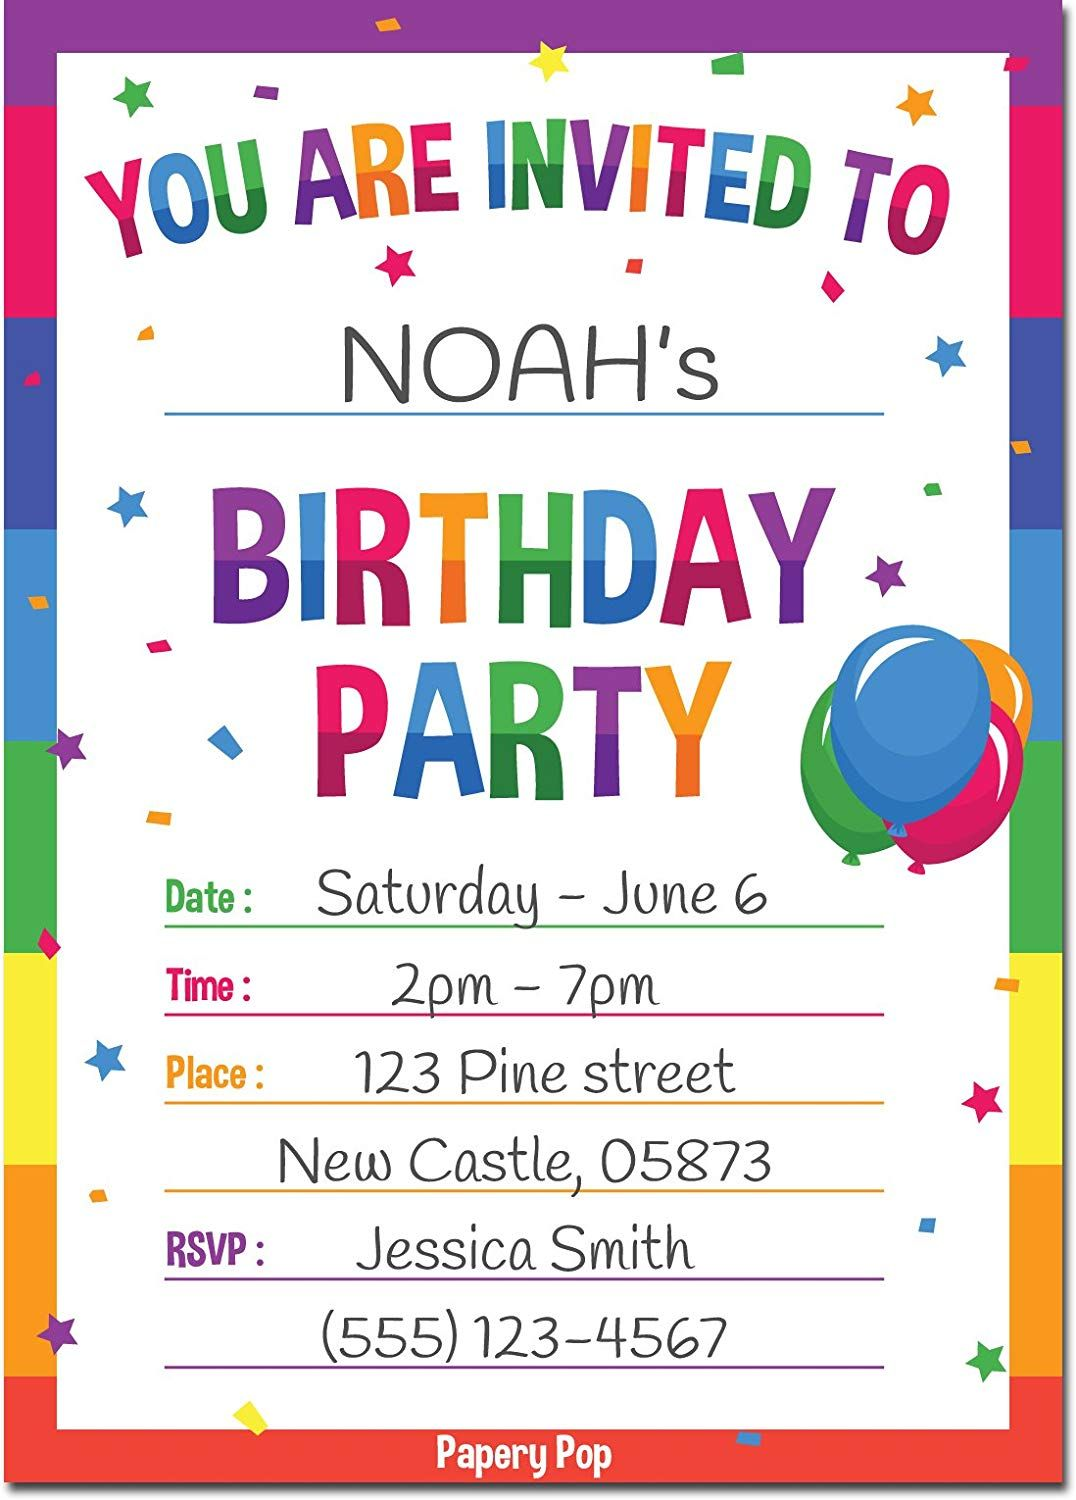 Birthday Party Invitation Pictures Want Inspiration To Make A Invitati Invitation Card Birthday Happy Birthday Invitation Card Kids Birthday Party Invitations